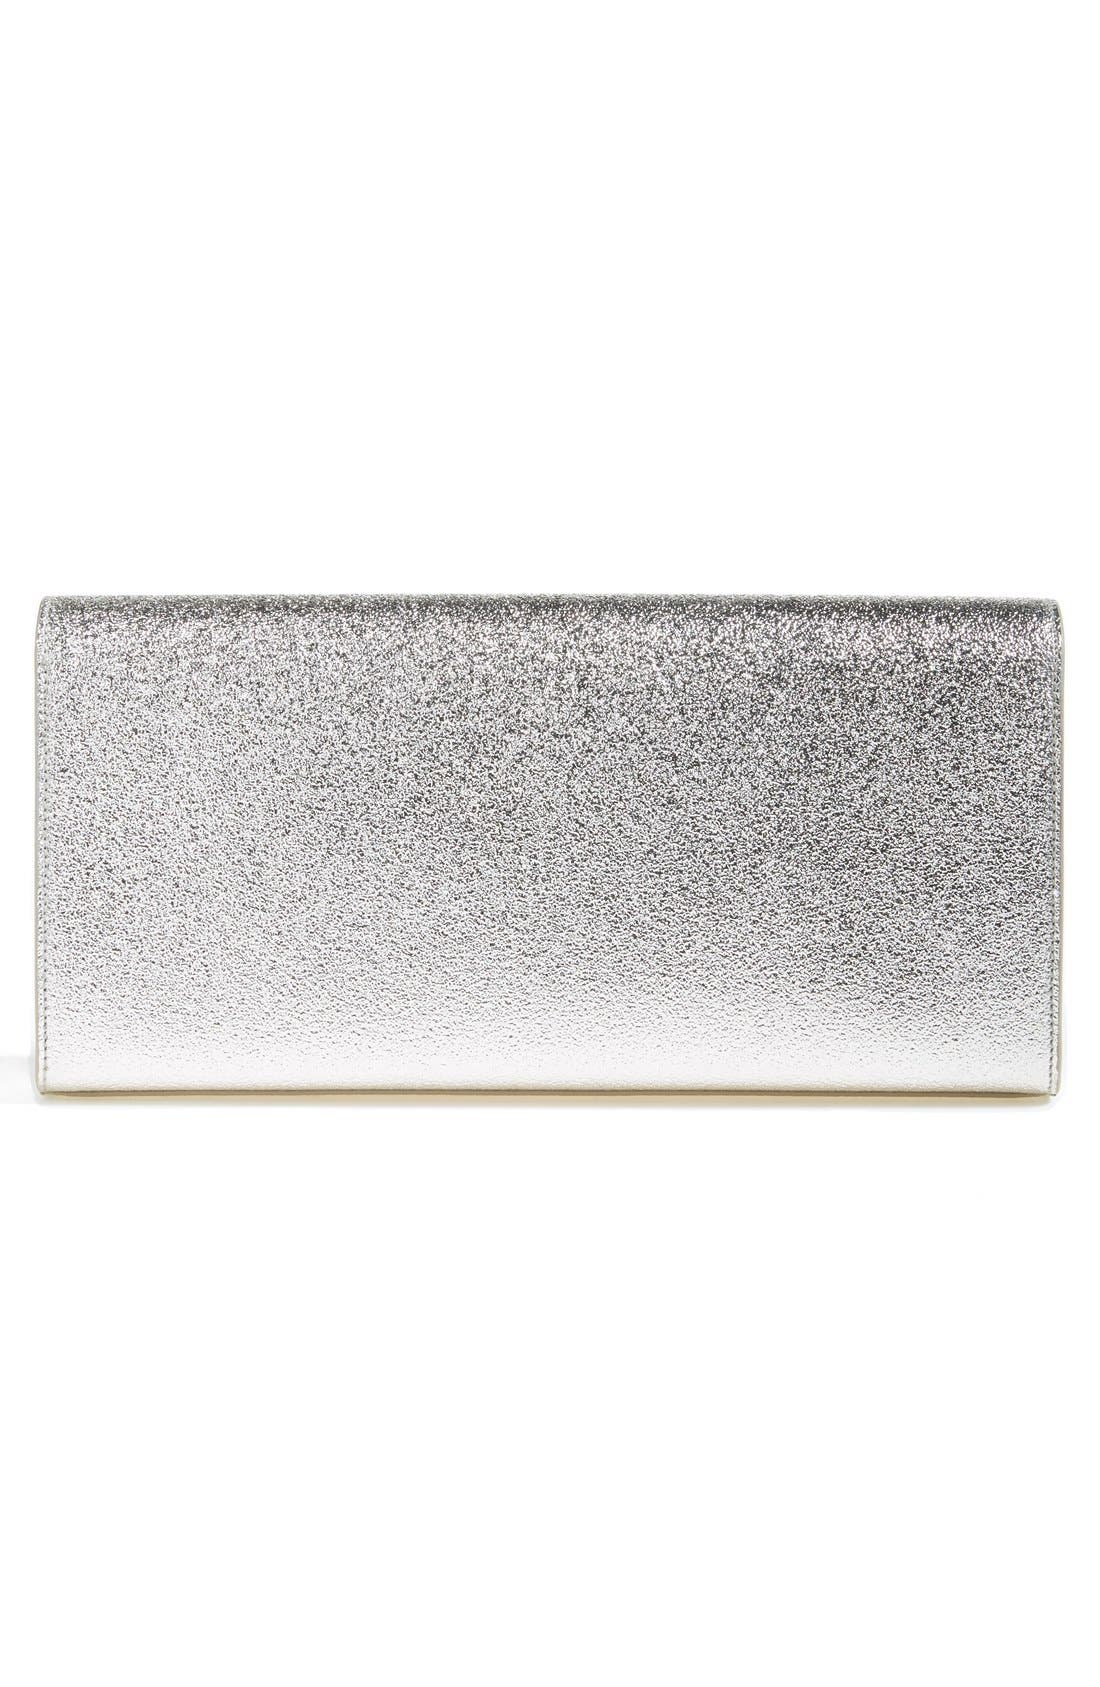 Alternate Image 3  - Saint Laurent 'Cassandre' Leather Clutch